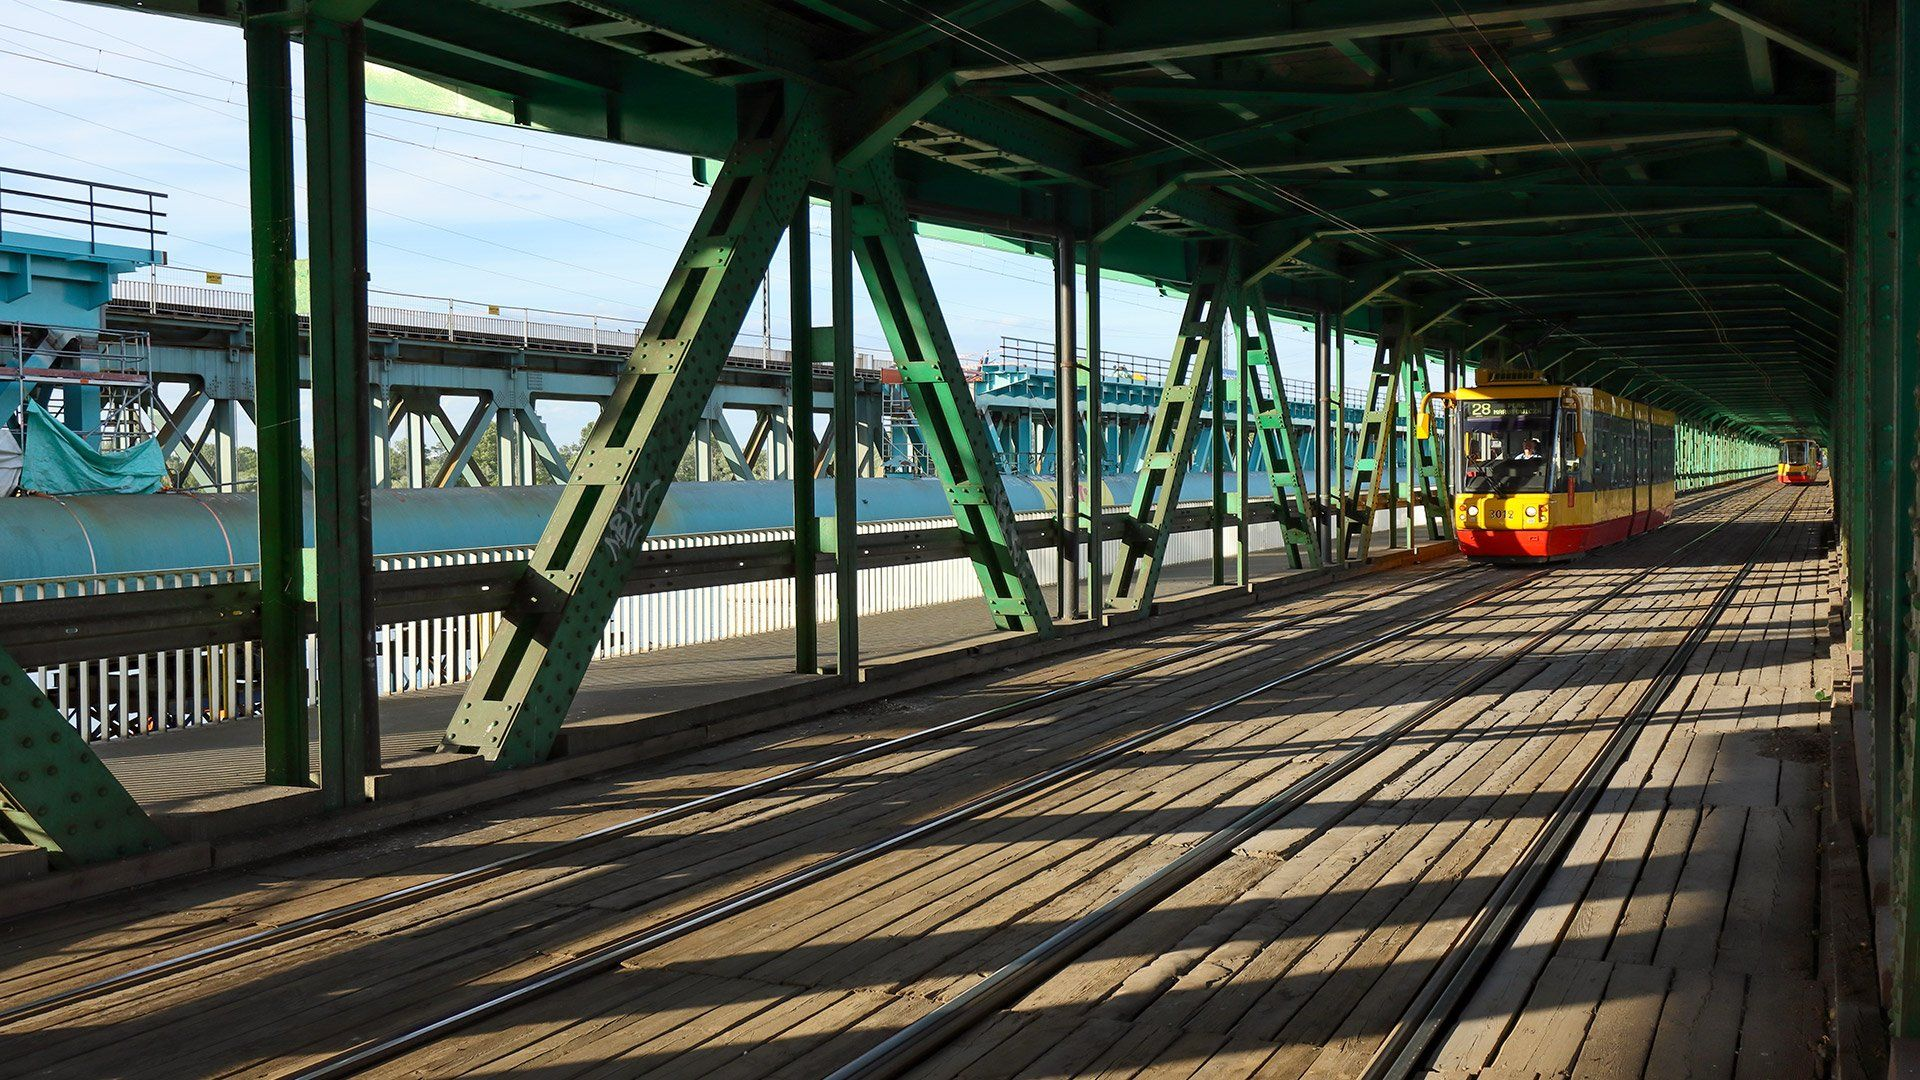 EOS M6 Mark II sample tram tracks bridge